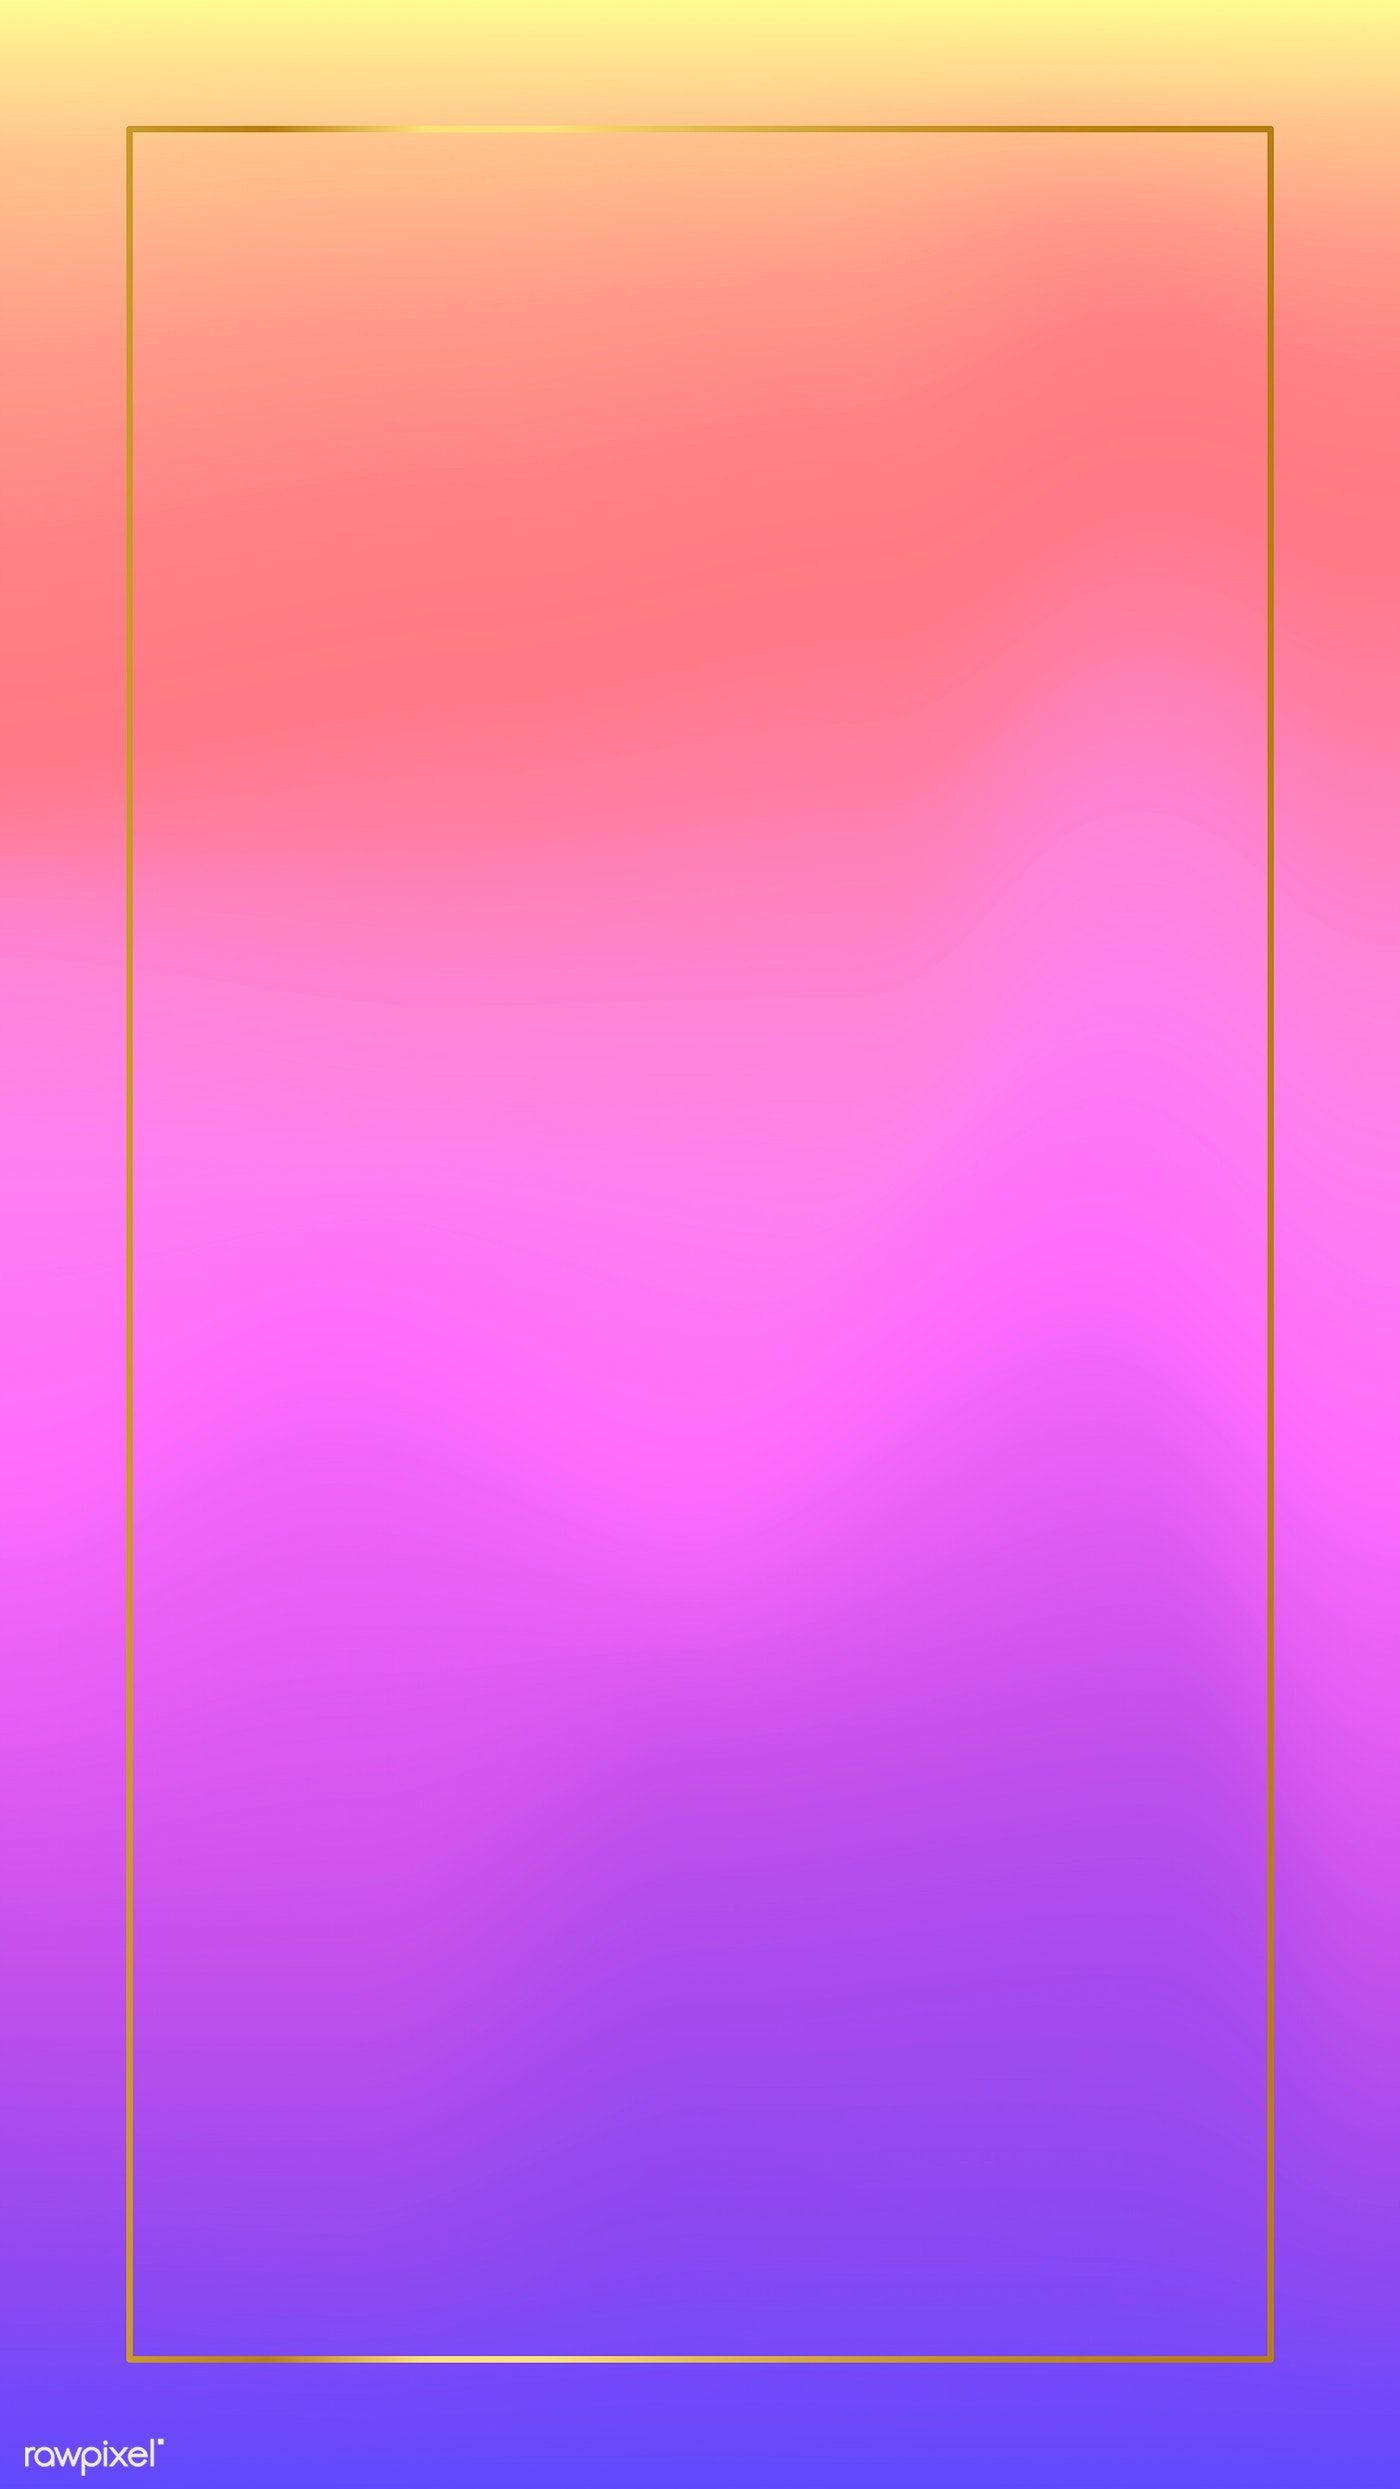 Download premium vector of Gold frame on pink and purple holographic